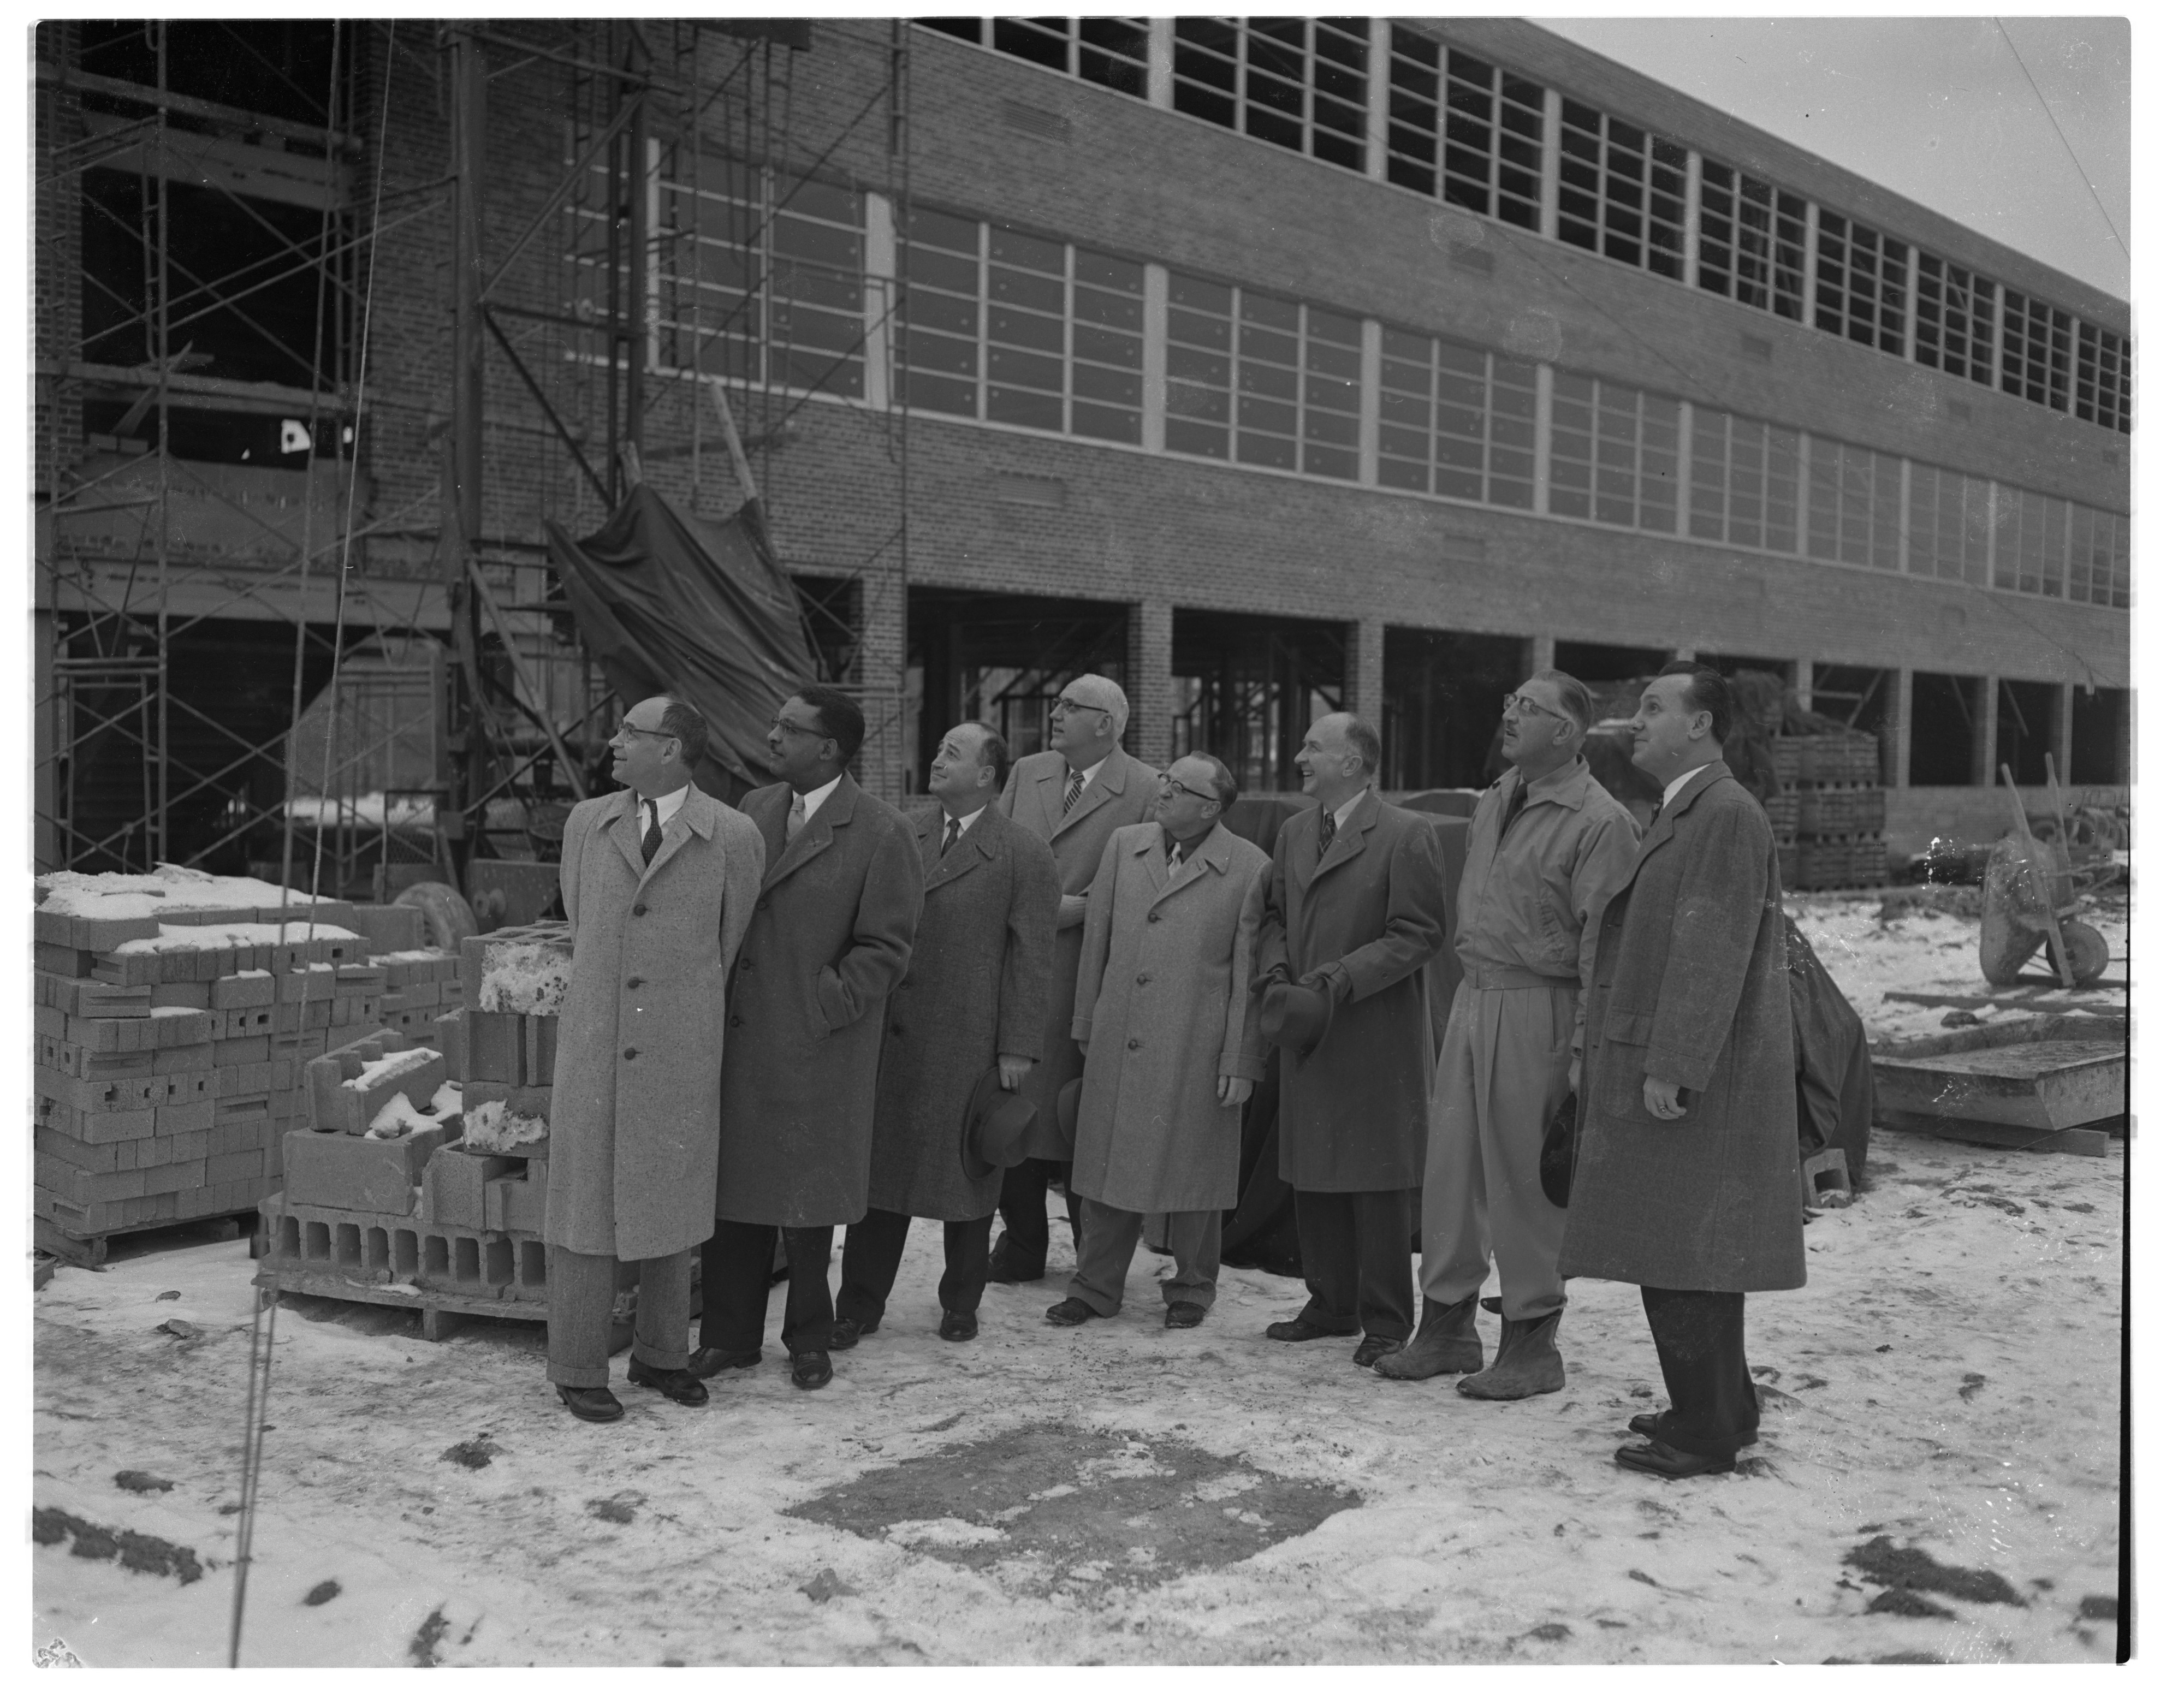 School Officials Prepare For Cornerstone Ceremony at New Ann Arbor High School, December 1954 image